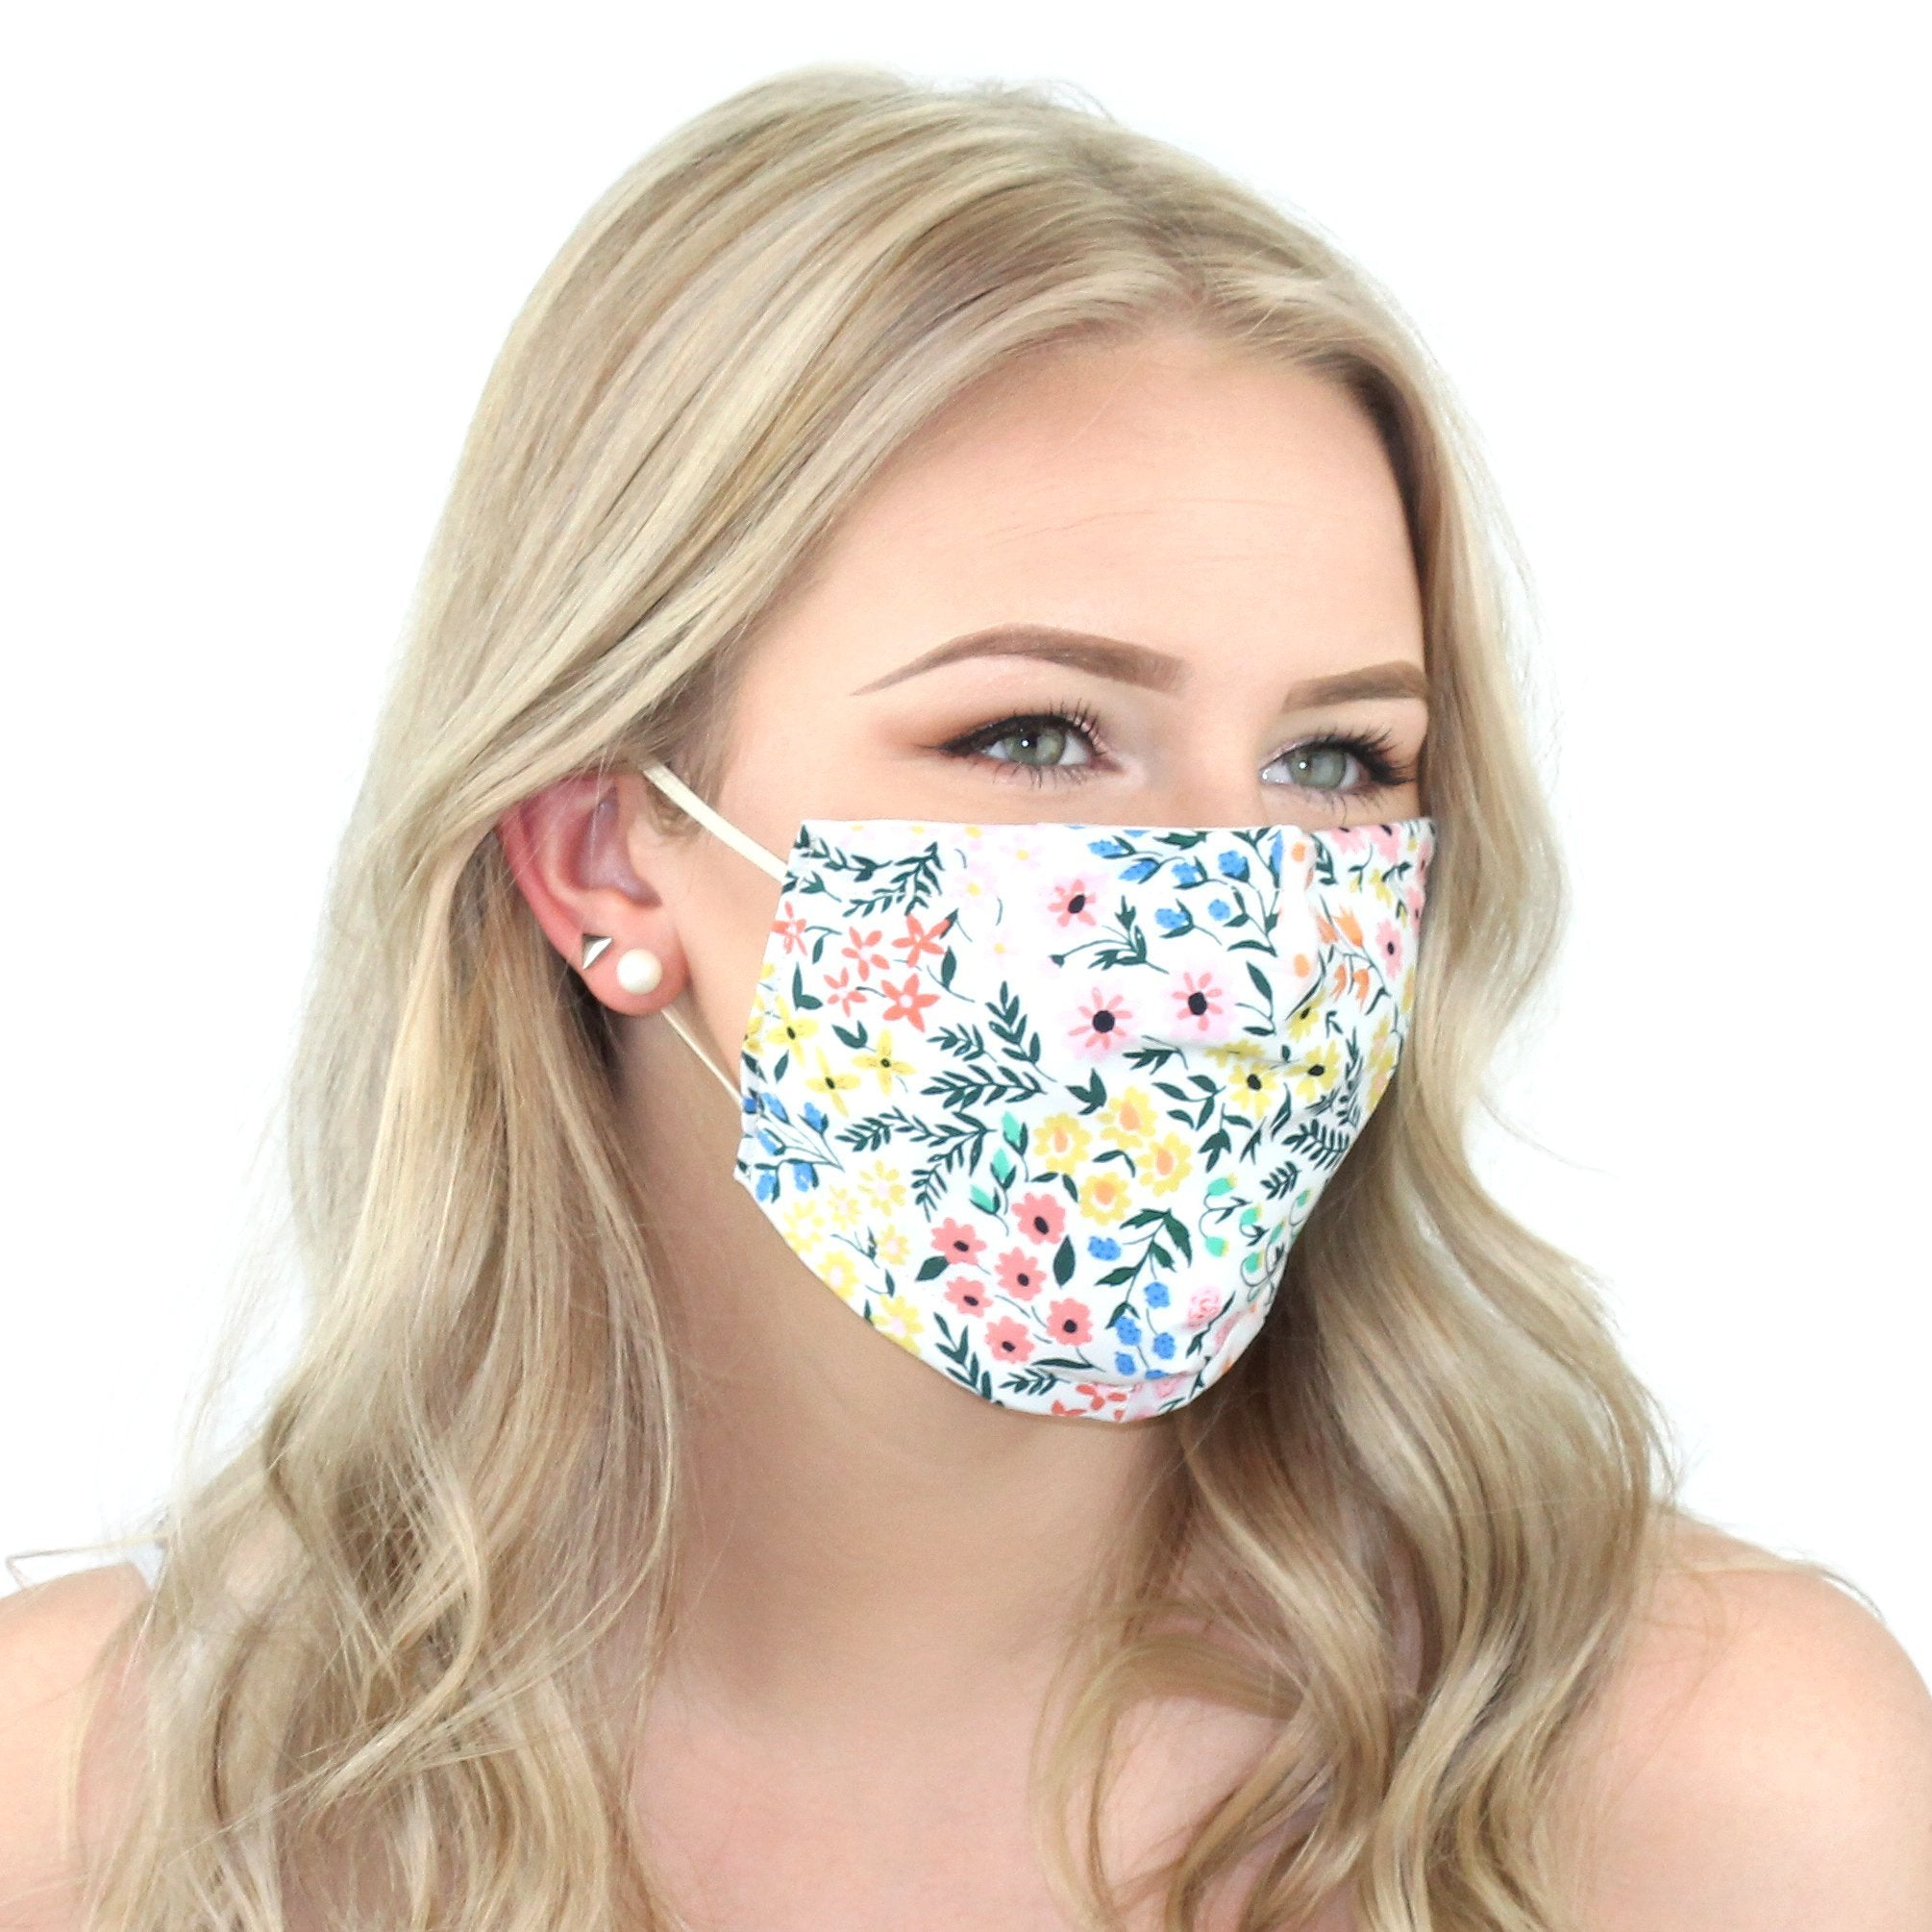 Reusable Cloth Face Mask With Pm2.5 Filter And Nose Bridge White Floral Beauty & Health